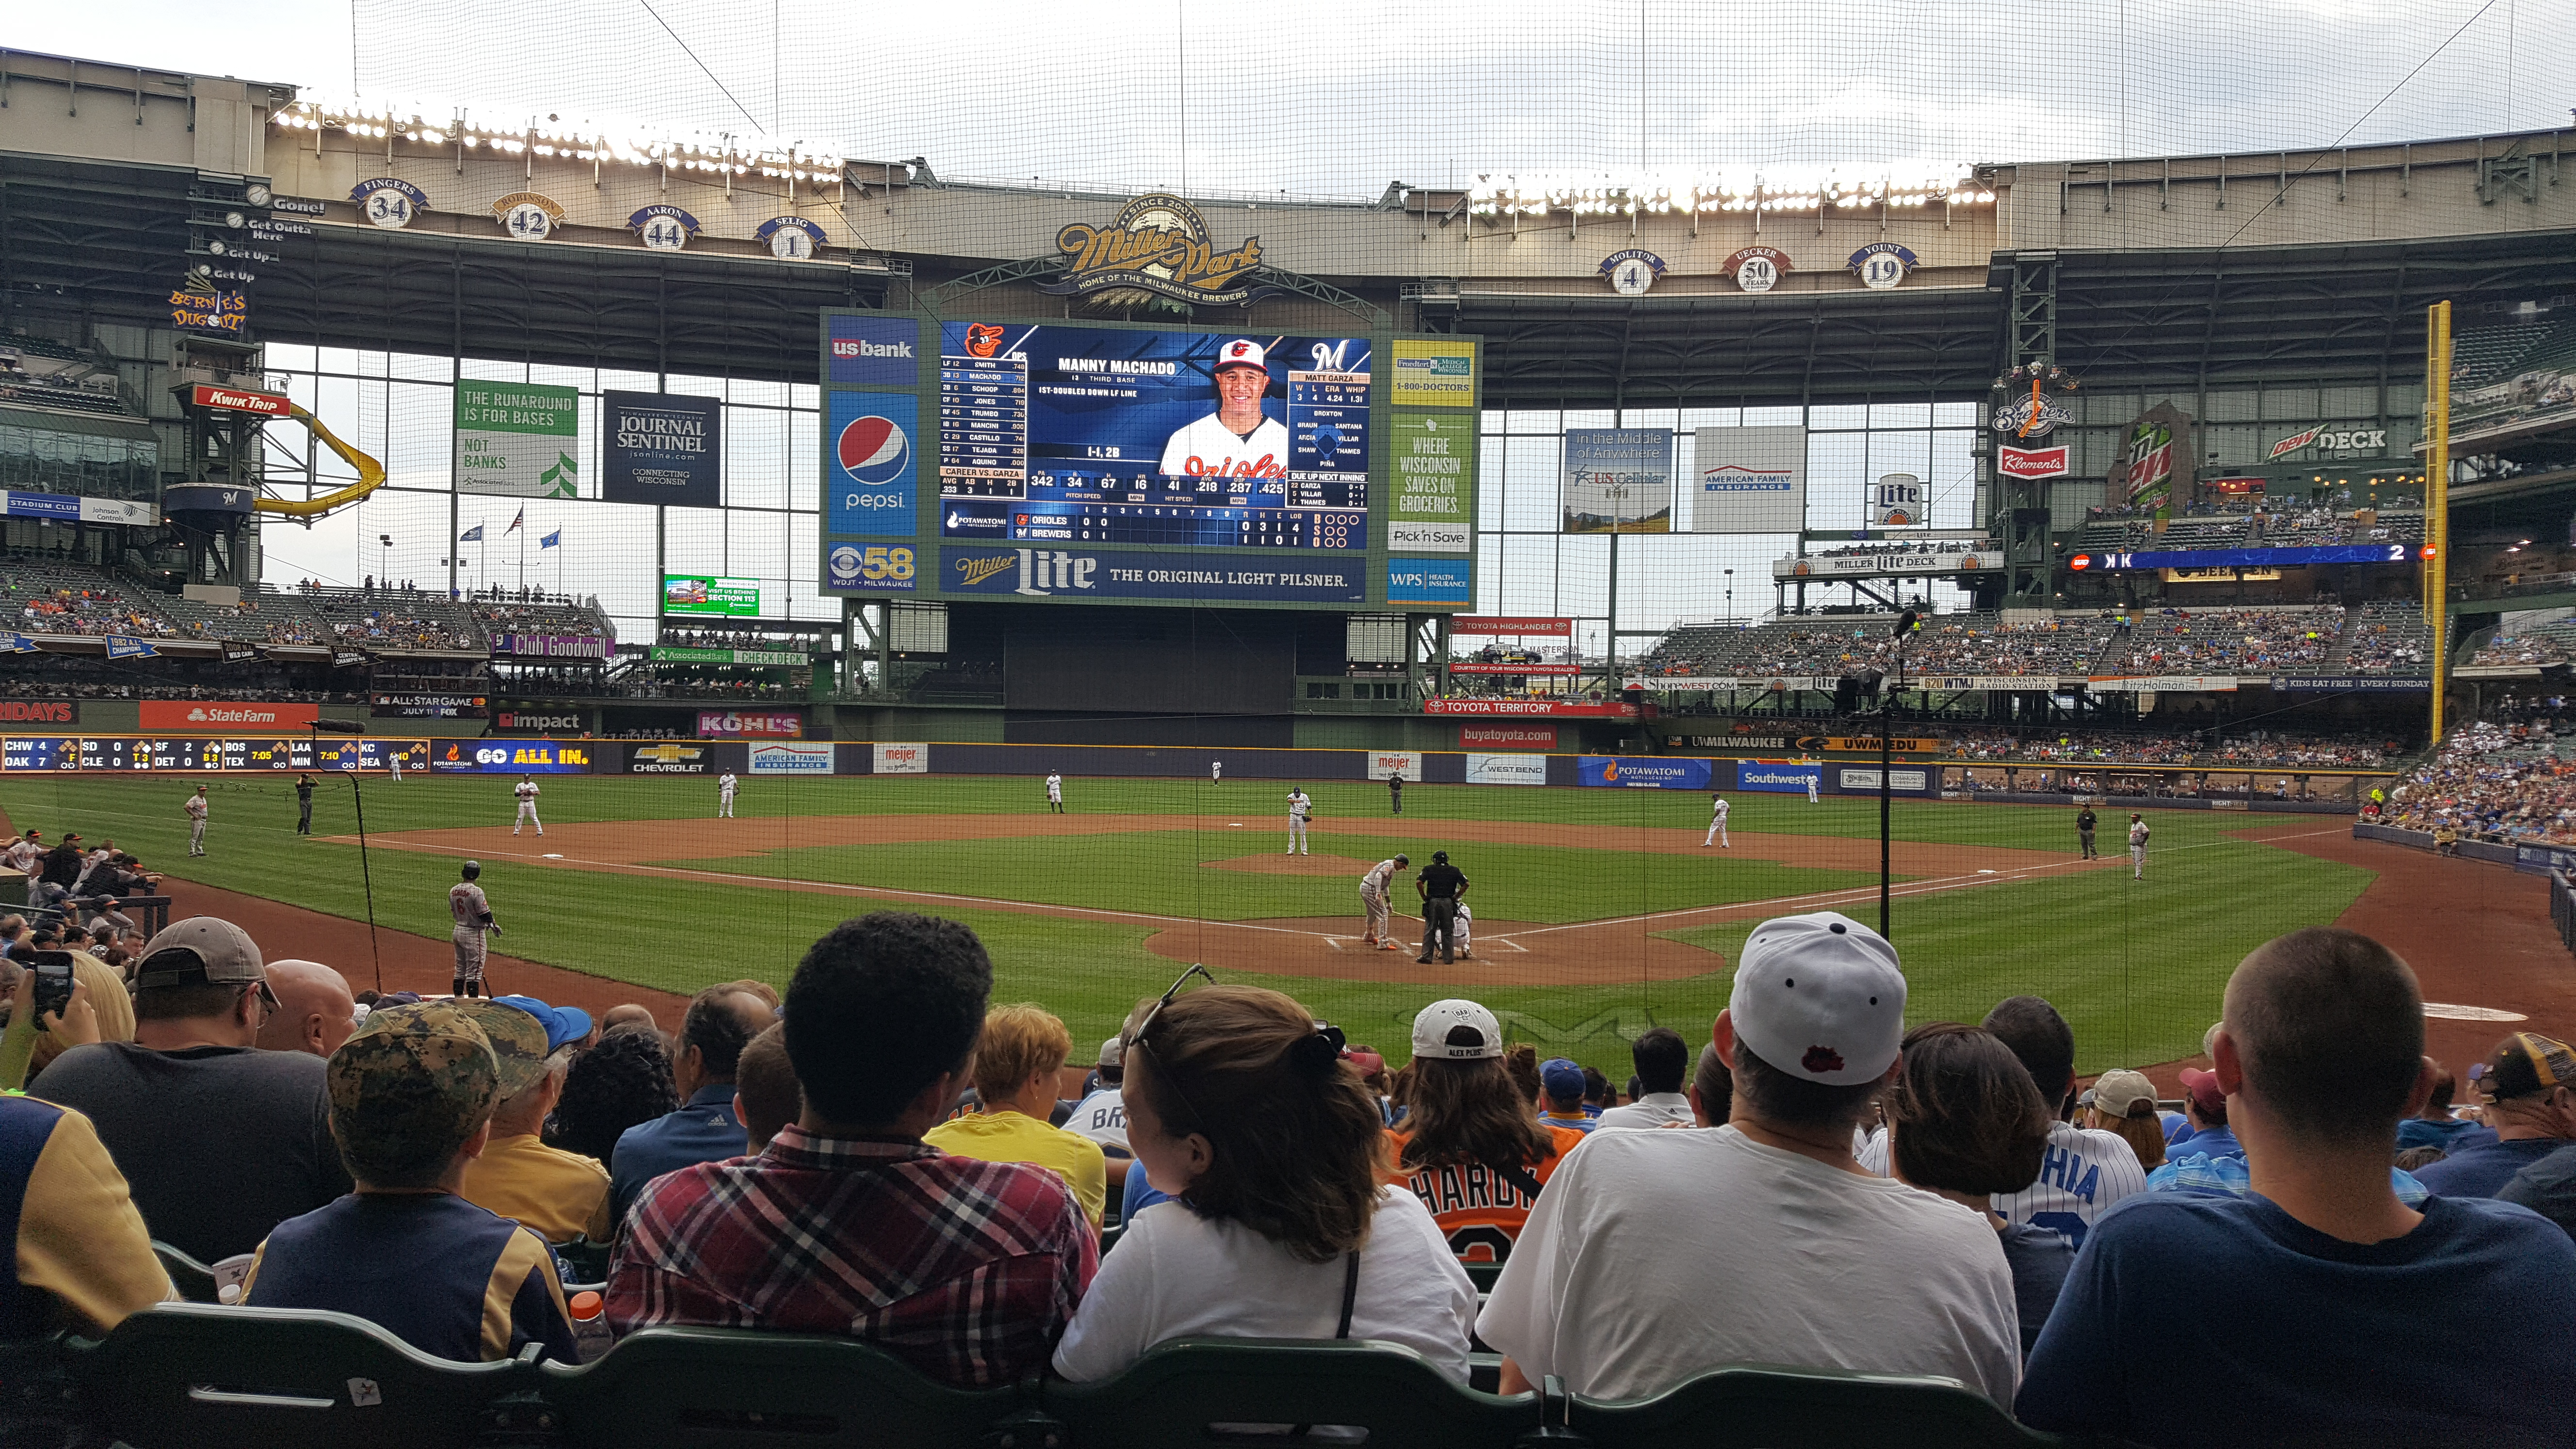 Brewers Game 7.5.17 | http://www.roseclearfield.com